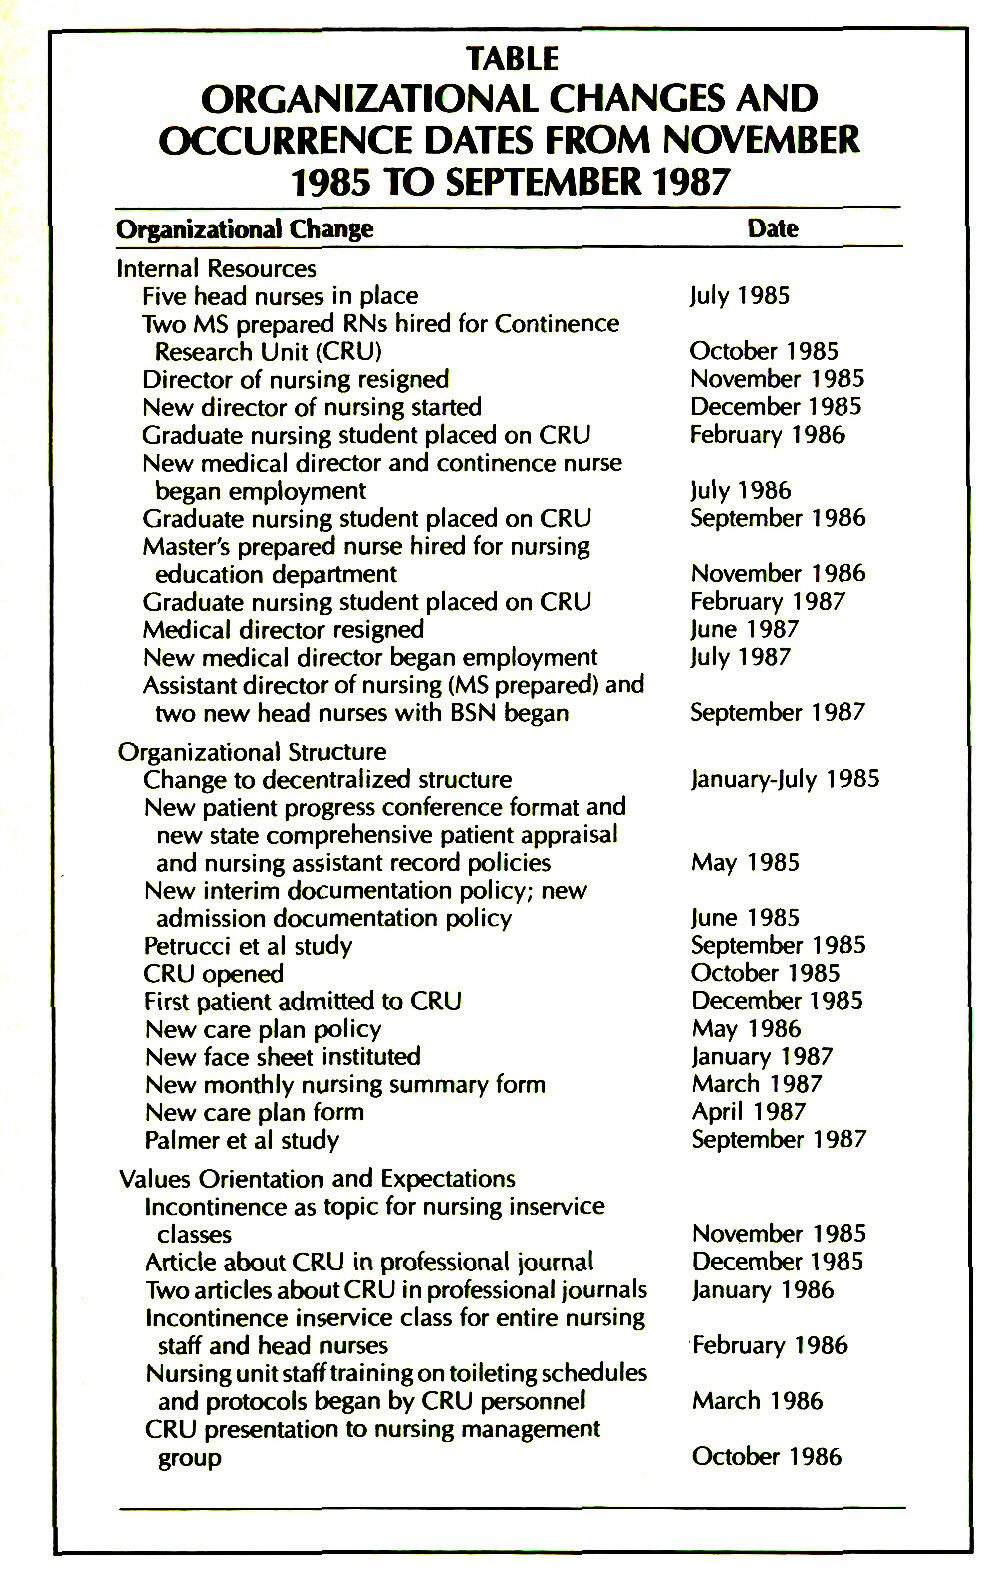 TABLEORGANIZATIONAL CHANGES AND OCCURRENCE DATES FROM NOVEMBER 1985 TO SEPTEMBER 1987